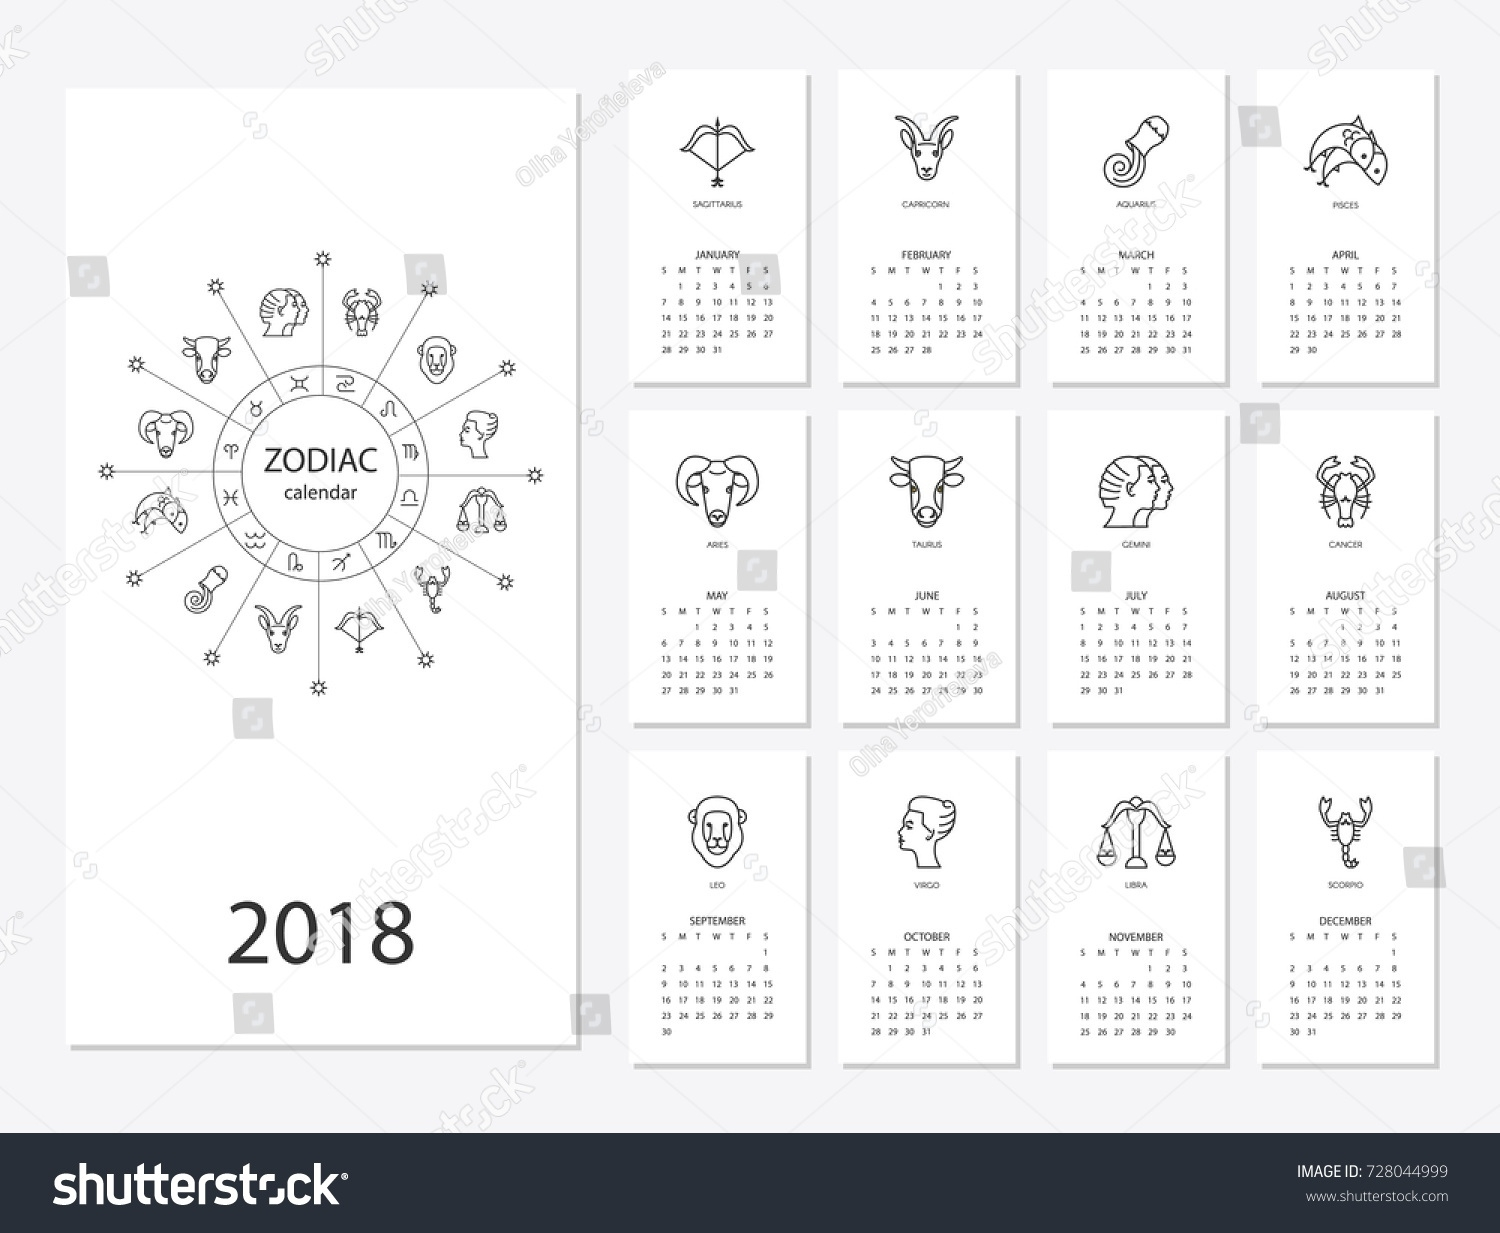 Calendar 2018 Horoscope Signs Zodiac Symbols Stock Vector (Royalty Calendar For Zodiac Signs